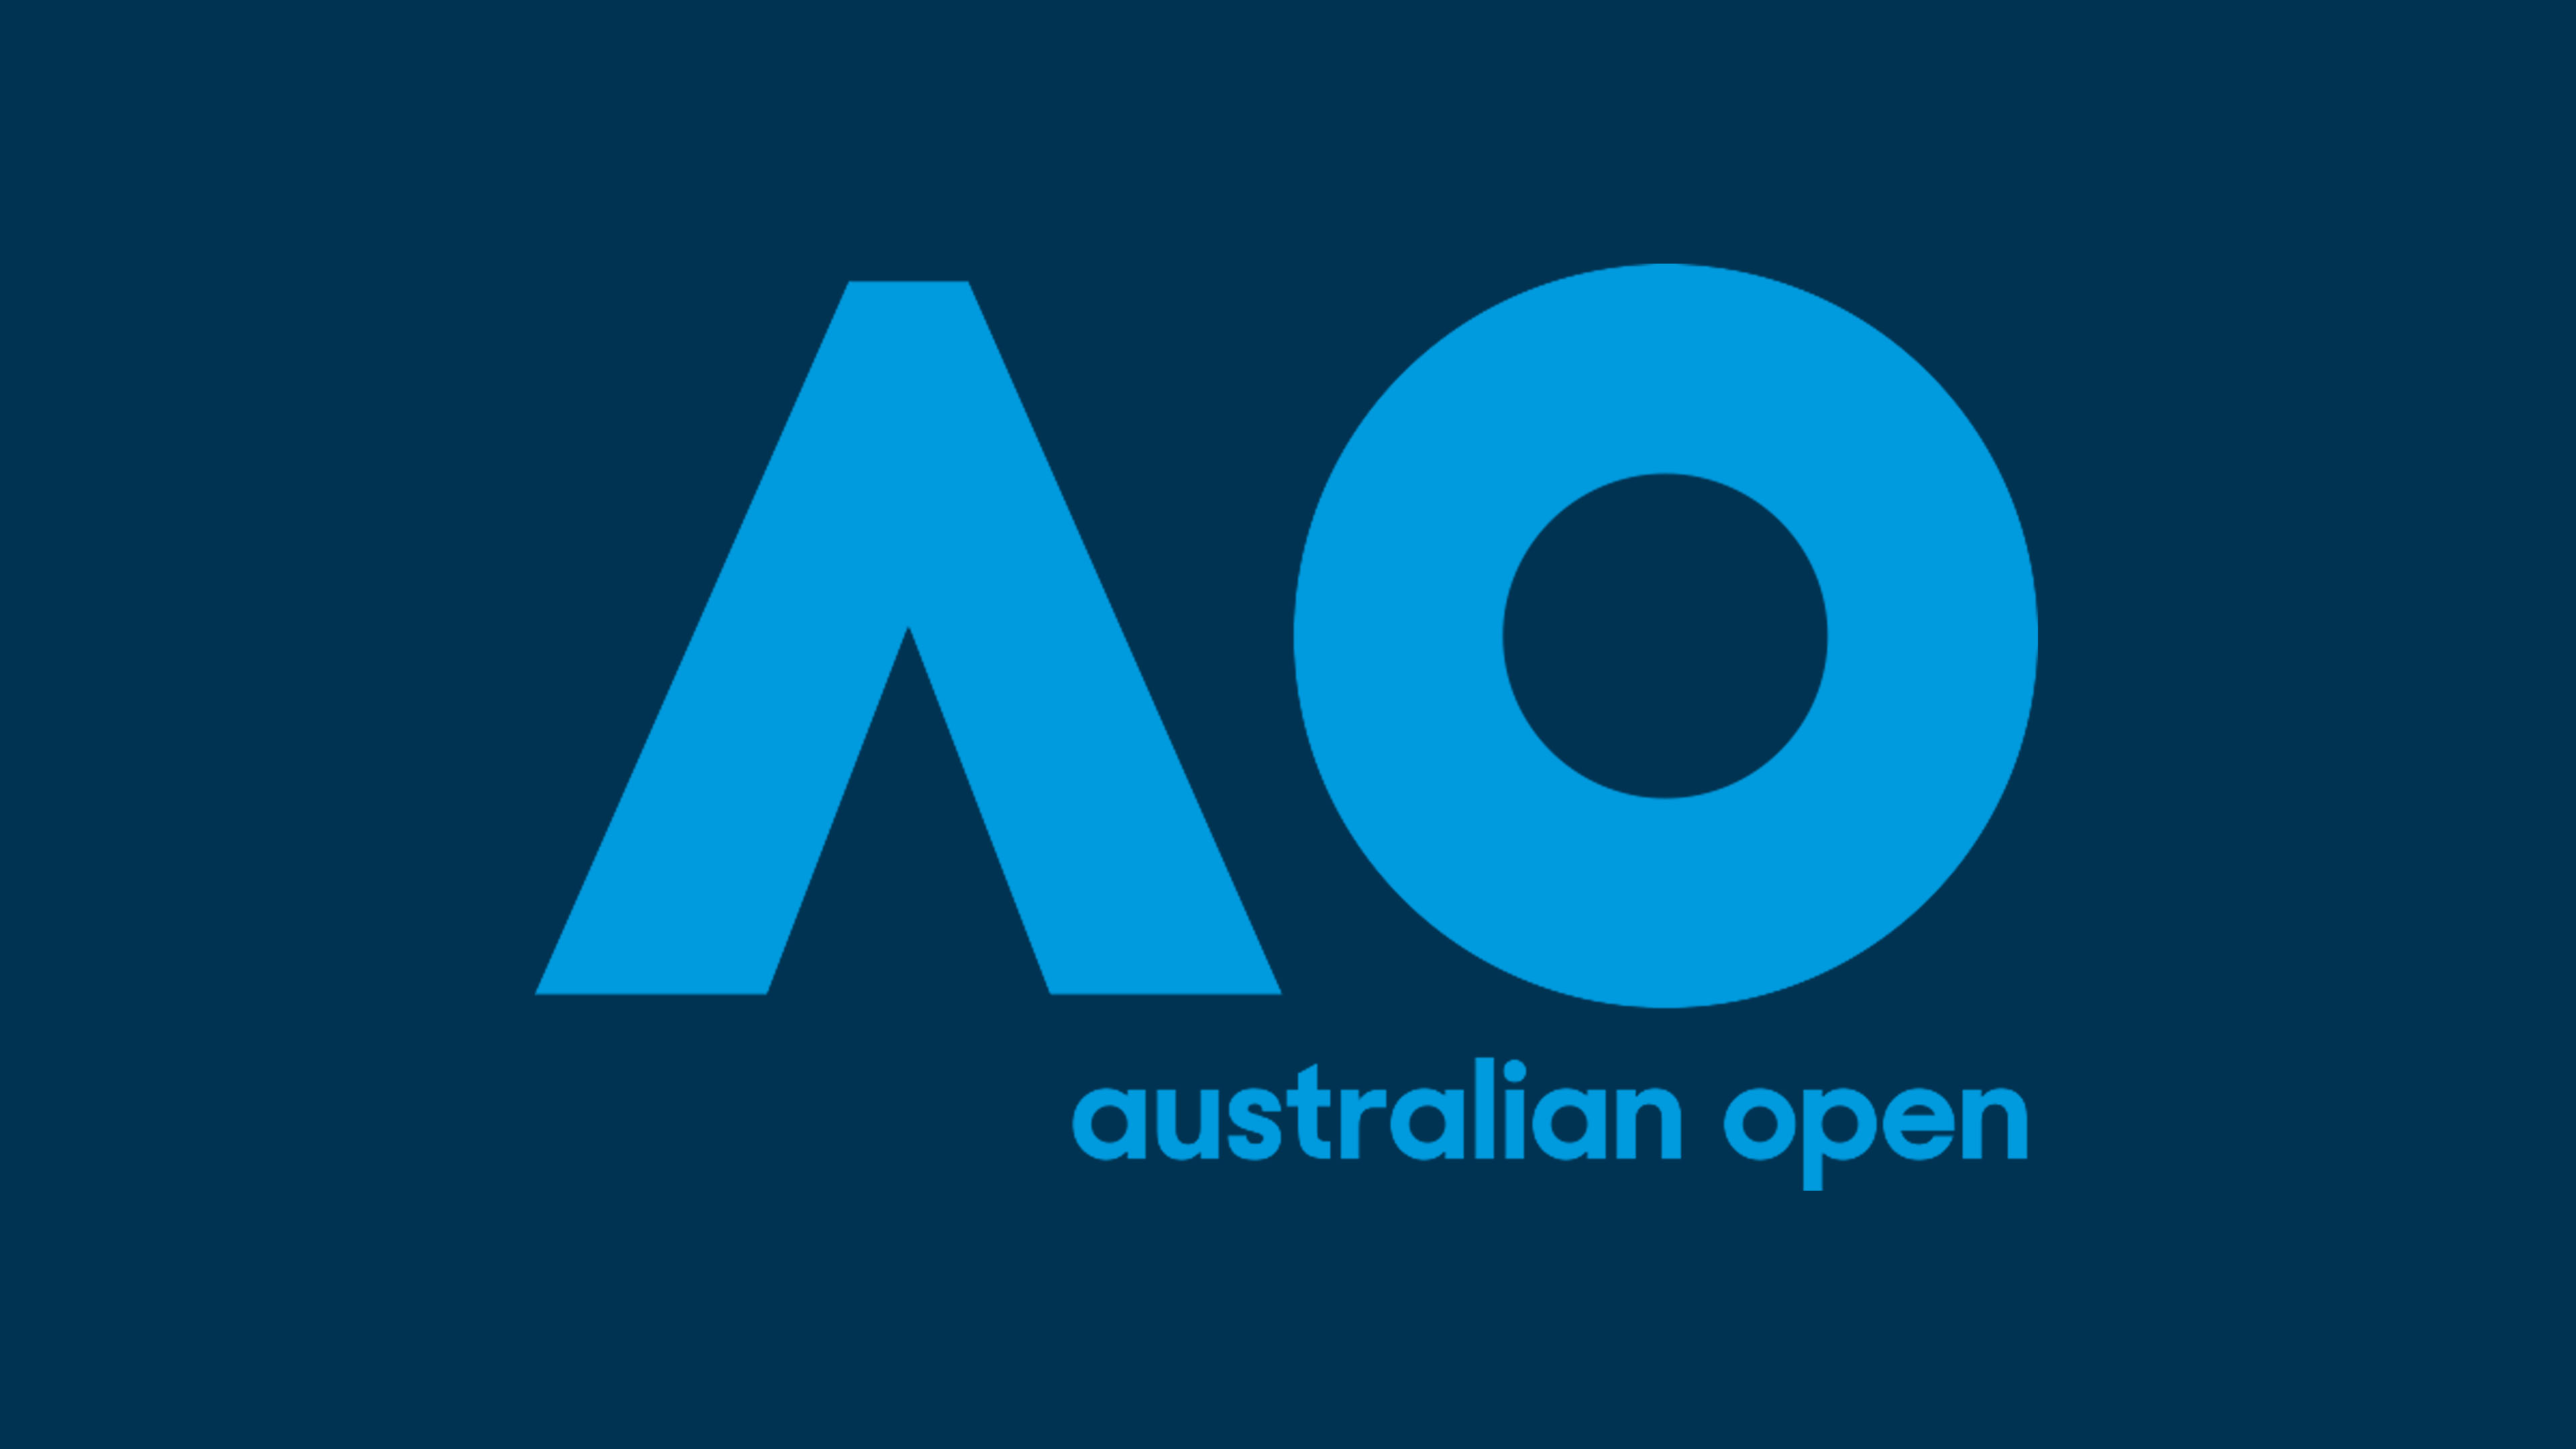 2019 Australian Open: Coverage presented by SoFi (First Round)